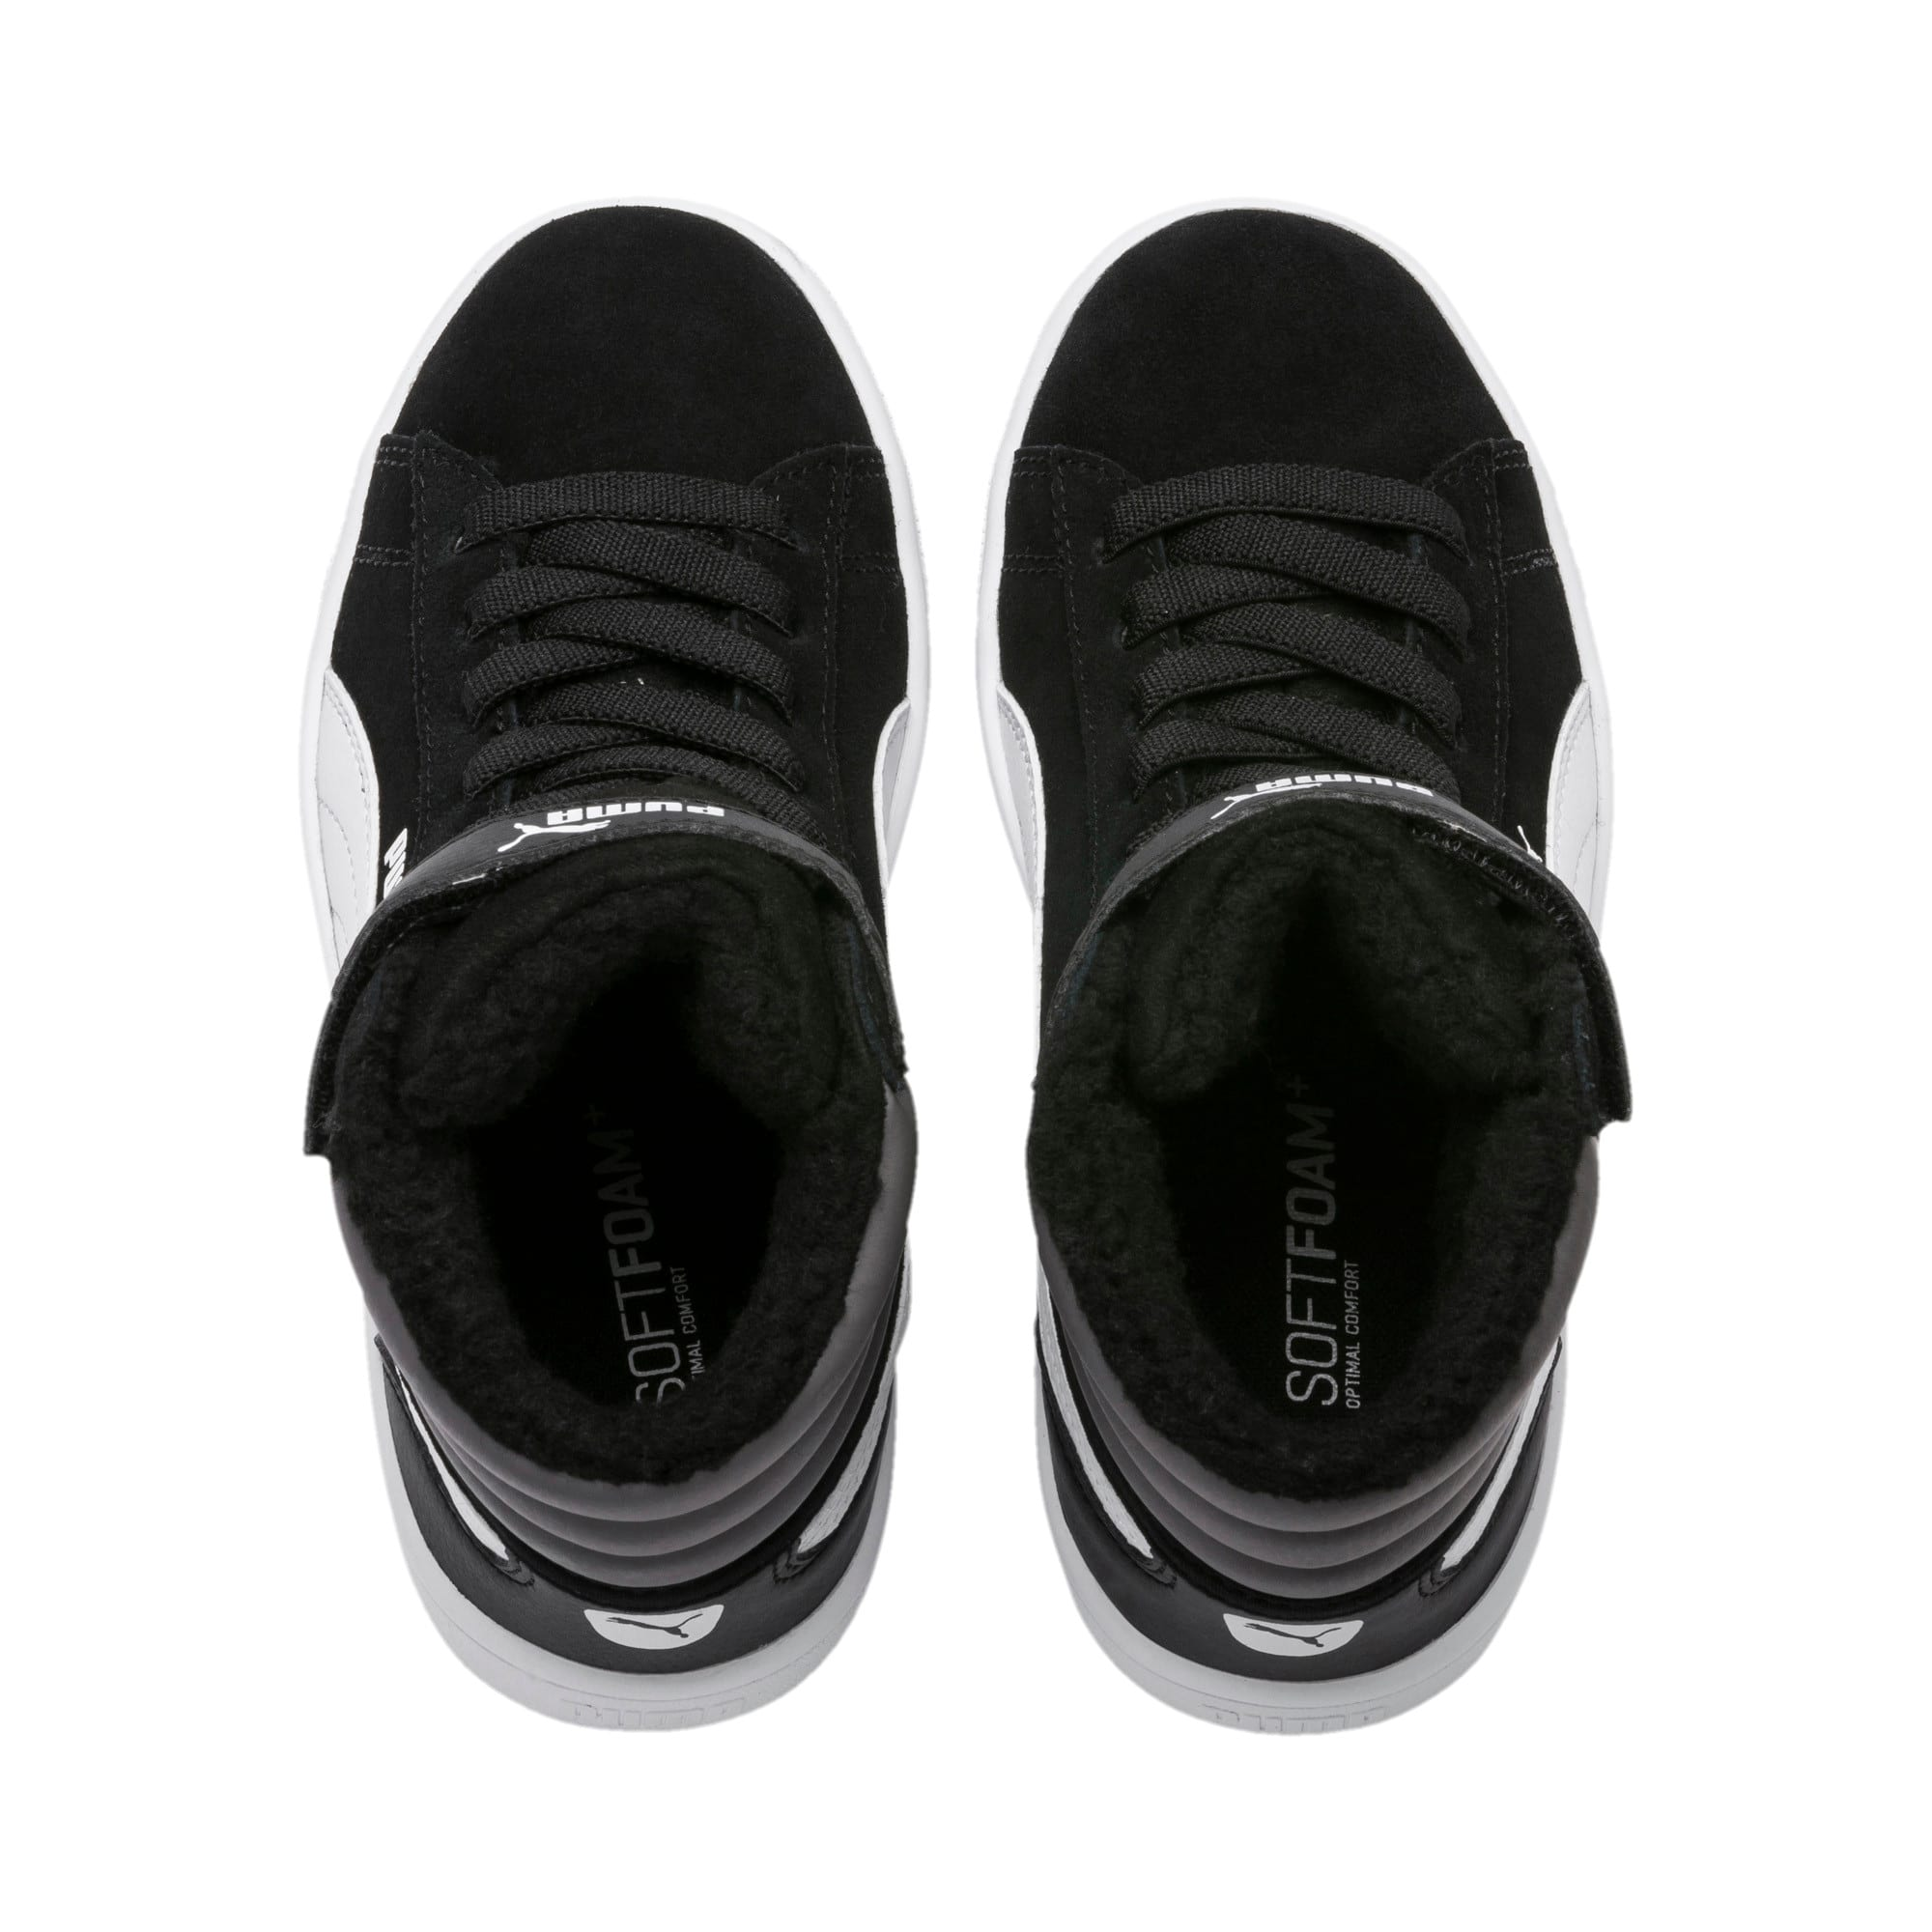 Thumbnail 6 of Vikky v2 Mid Fur V Kids' Trainers, Puma Black-CASTLEROCK-White, medium